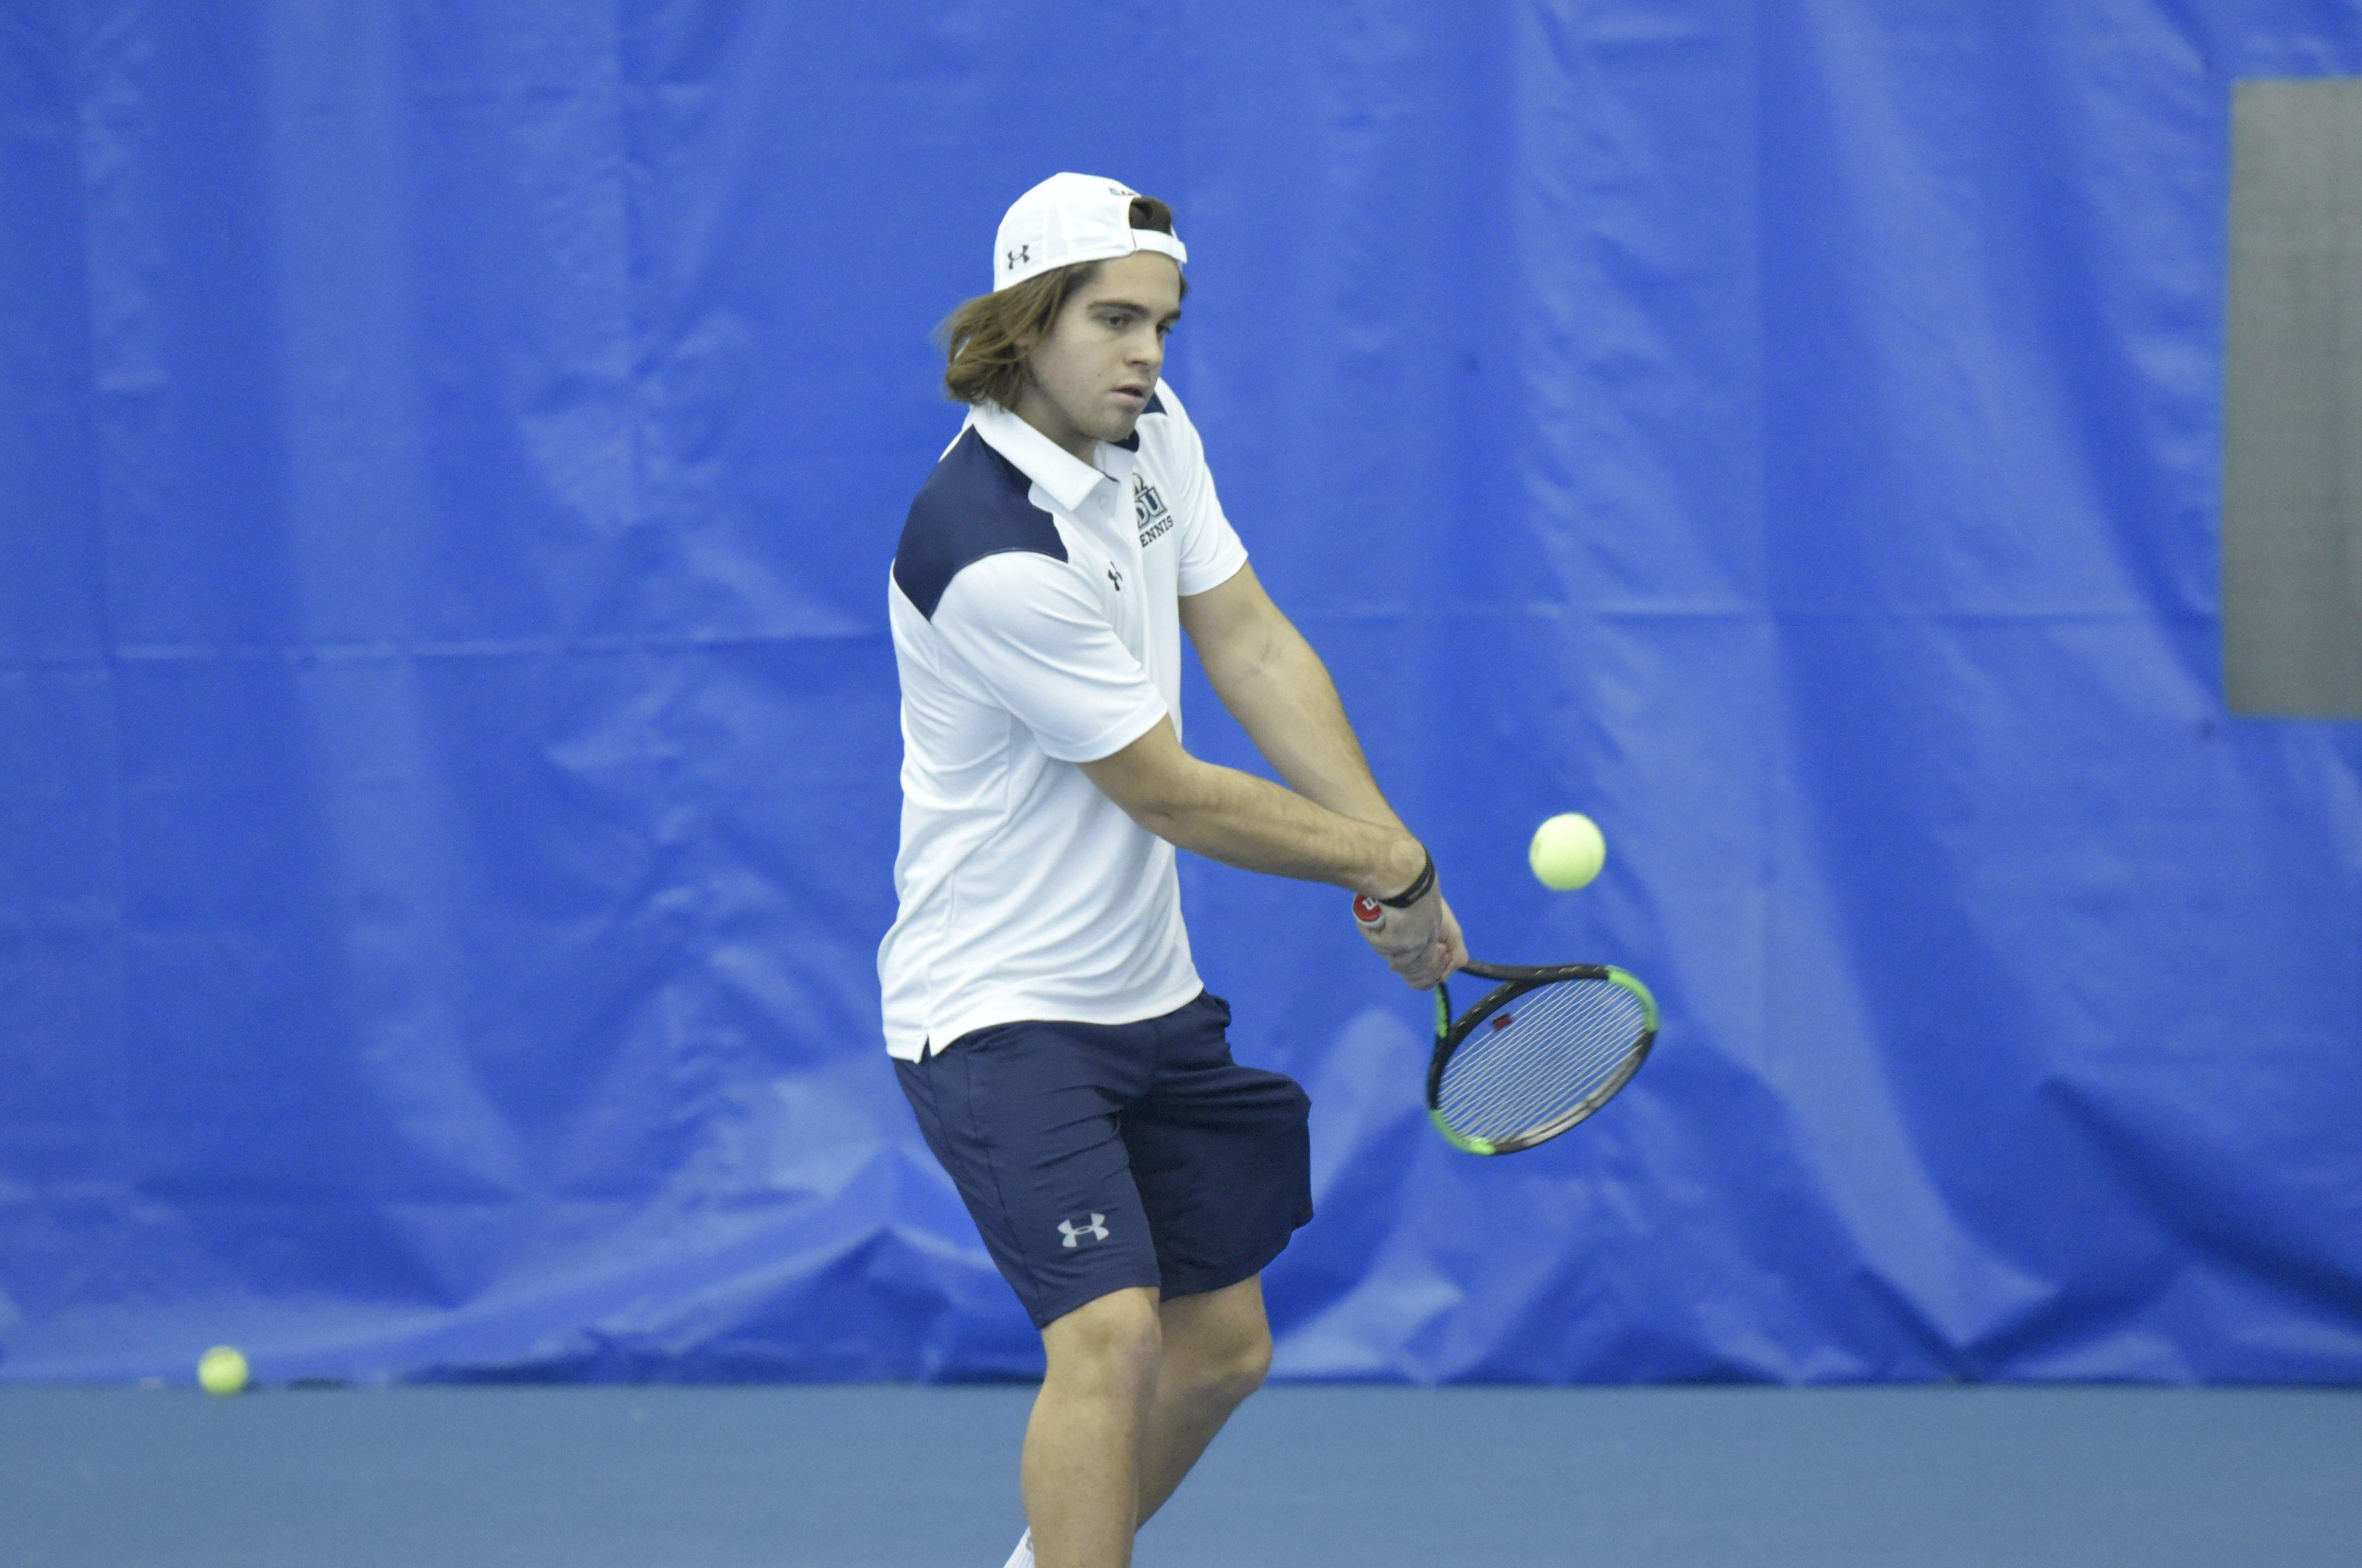 He came from Italy to play tennis for Old Dominion. Now, he's moved to Norfolk State.